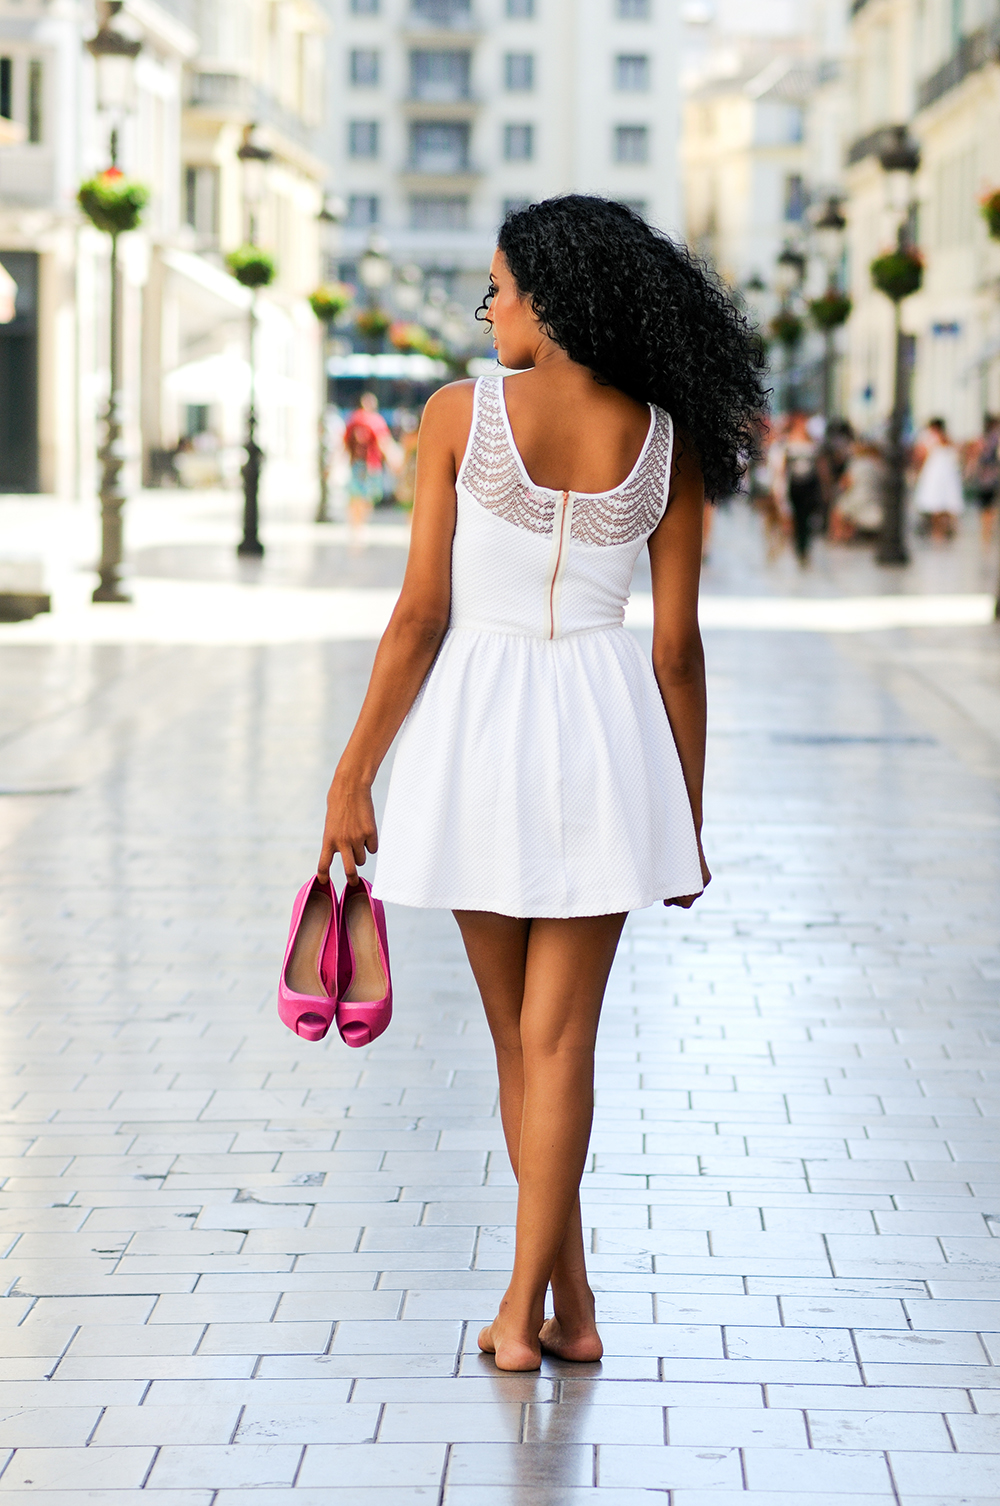 Portrait of a young black woman, afro hairstyle, walking barefoot on a commercial street